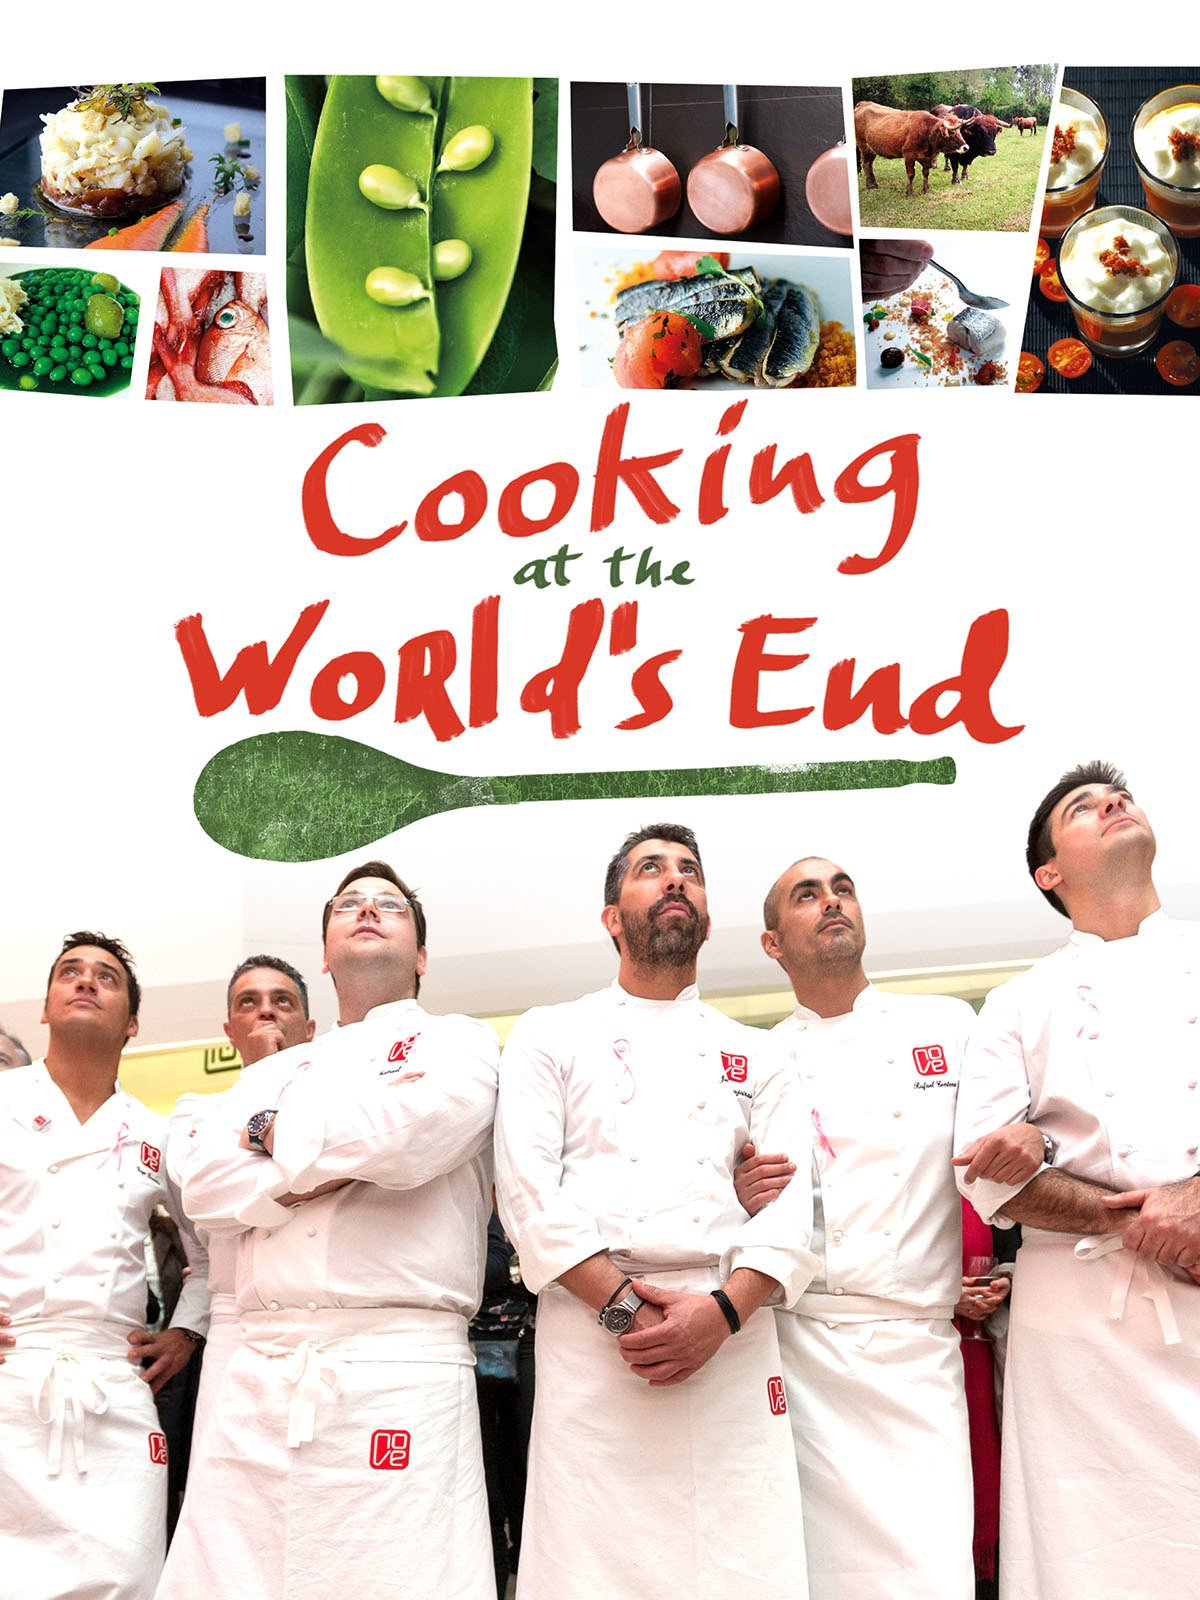 Cooking at the World's End by